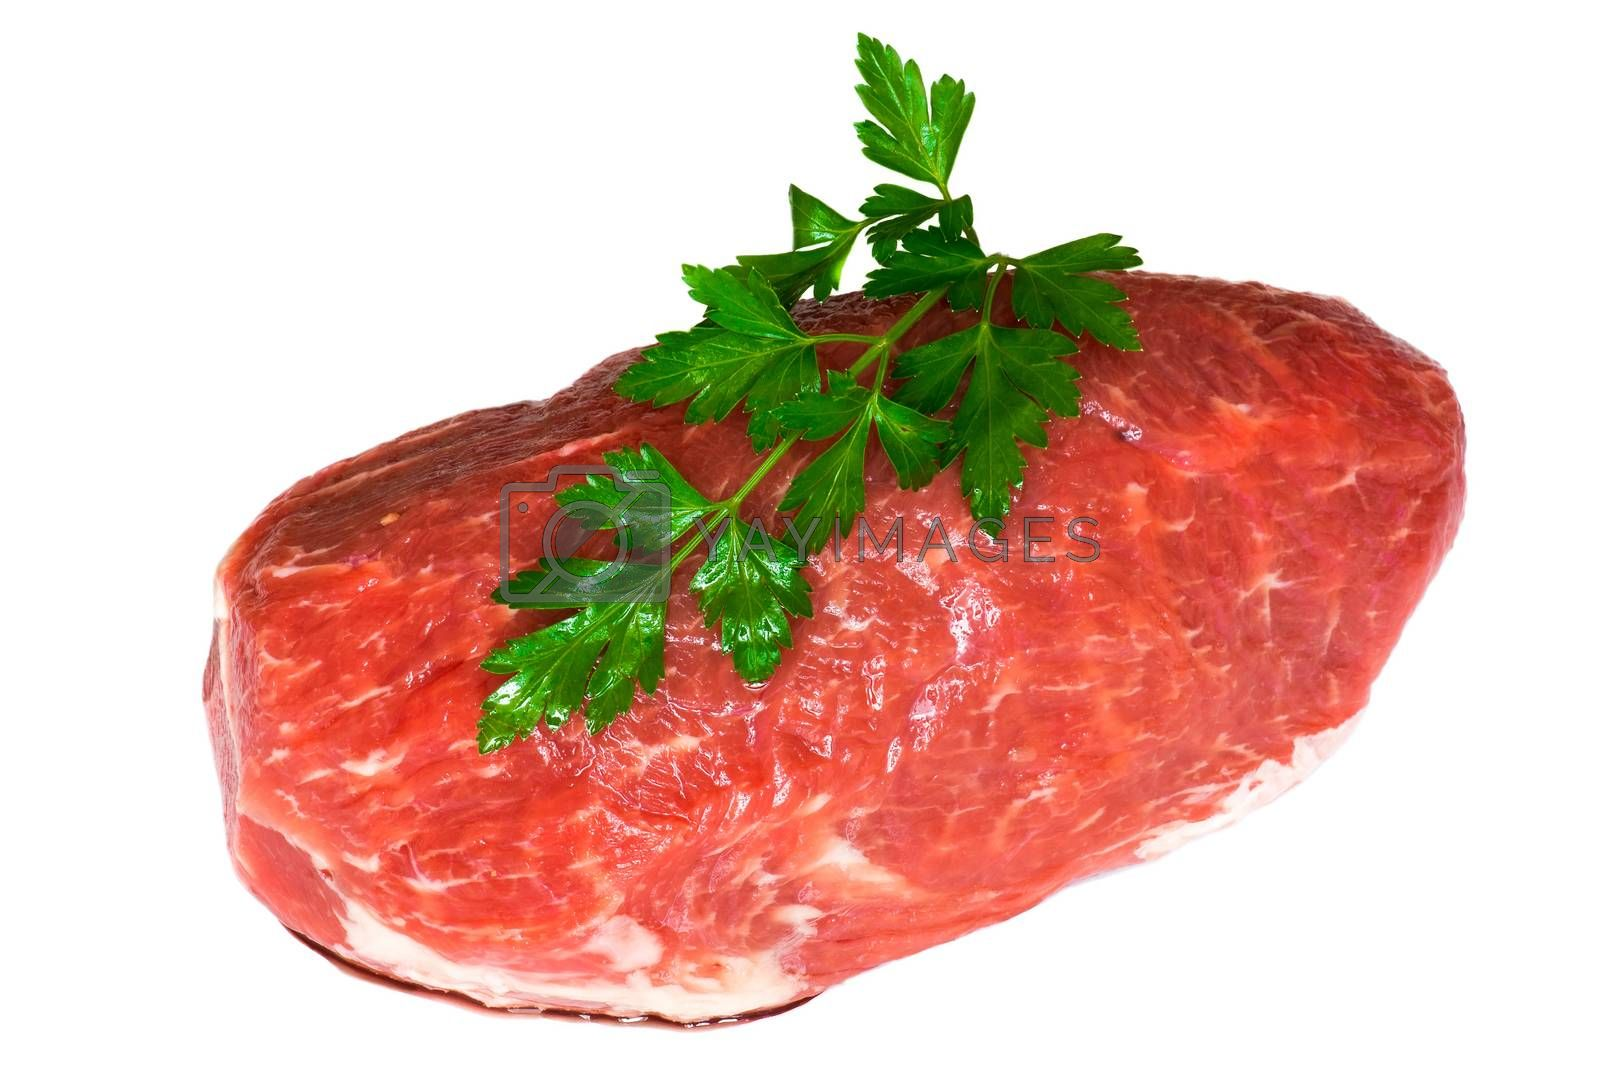 Royalty free image of Meat, by AlexBush